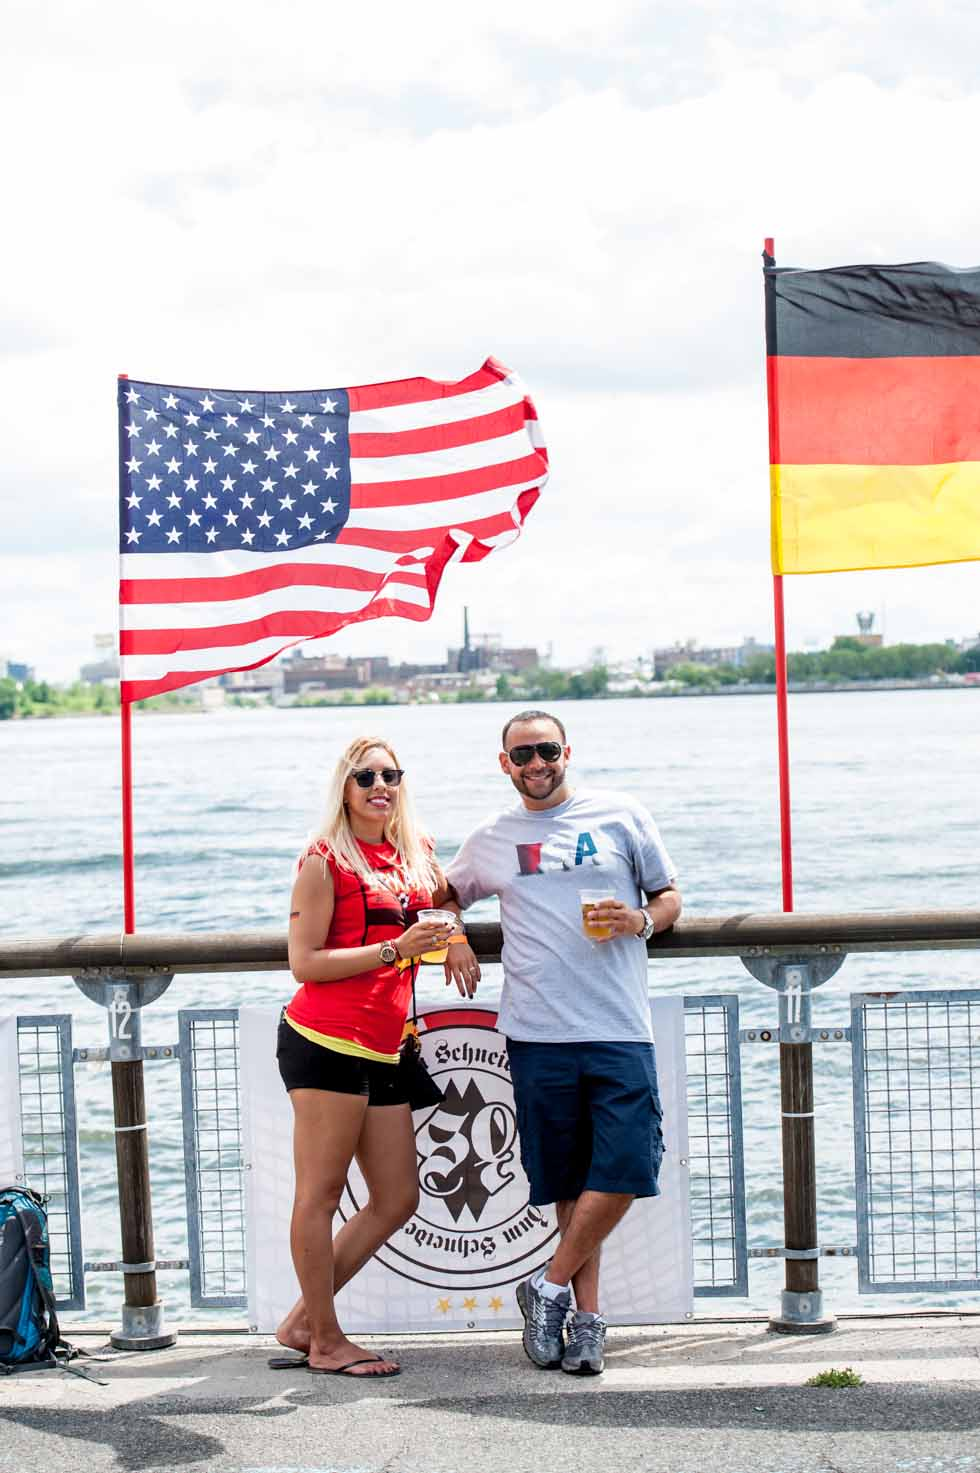 zum-schneider-nyc-2014-world-cup-germany-usa-8422.jpg